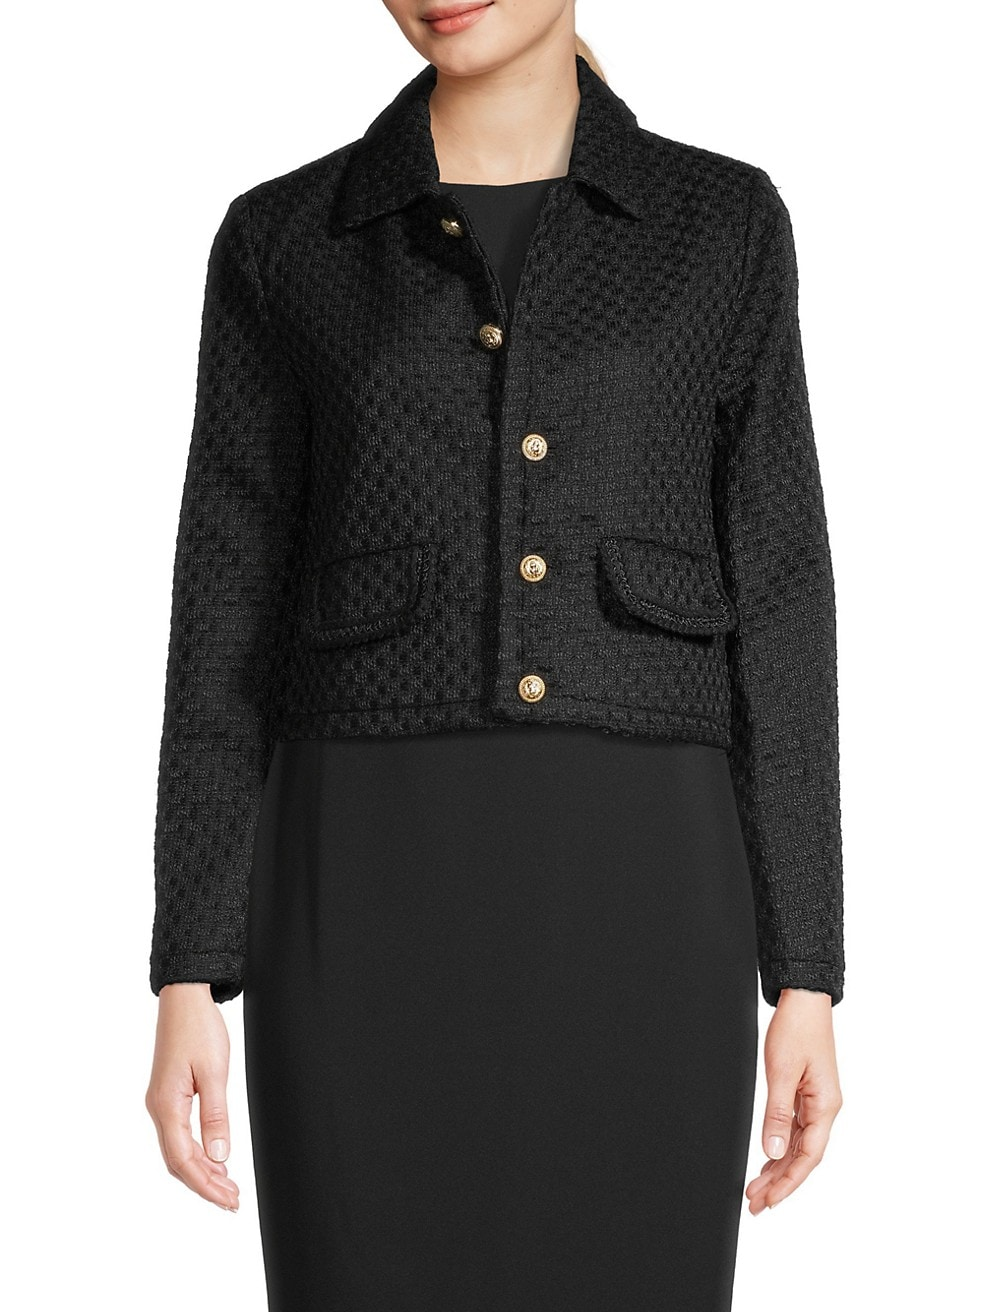 Saks Off 5th: Warm styles for cold weather up to 60% OFF